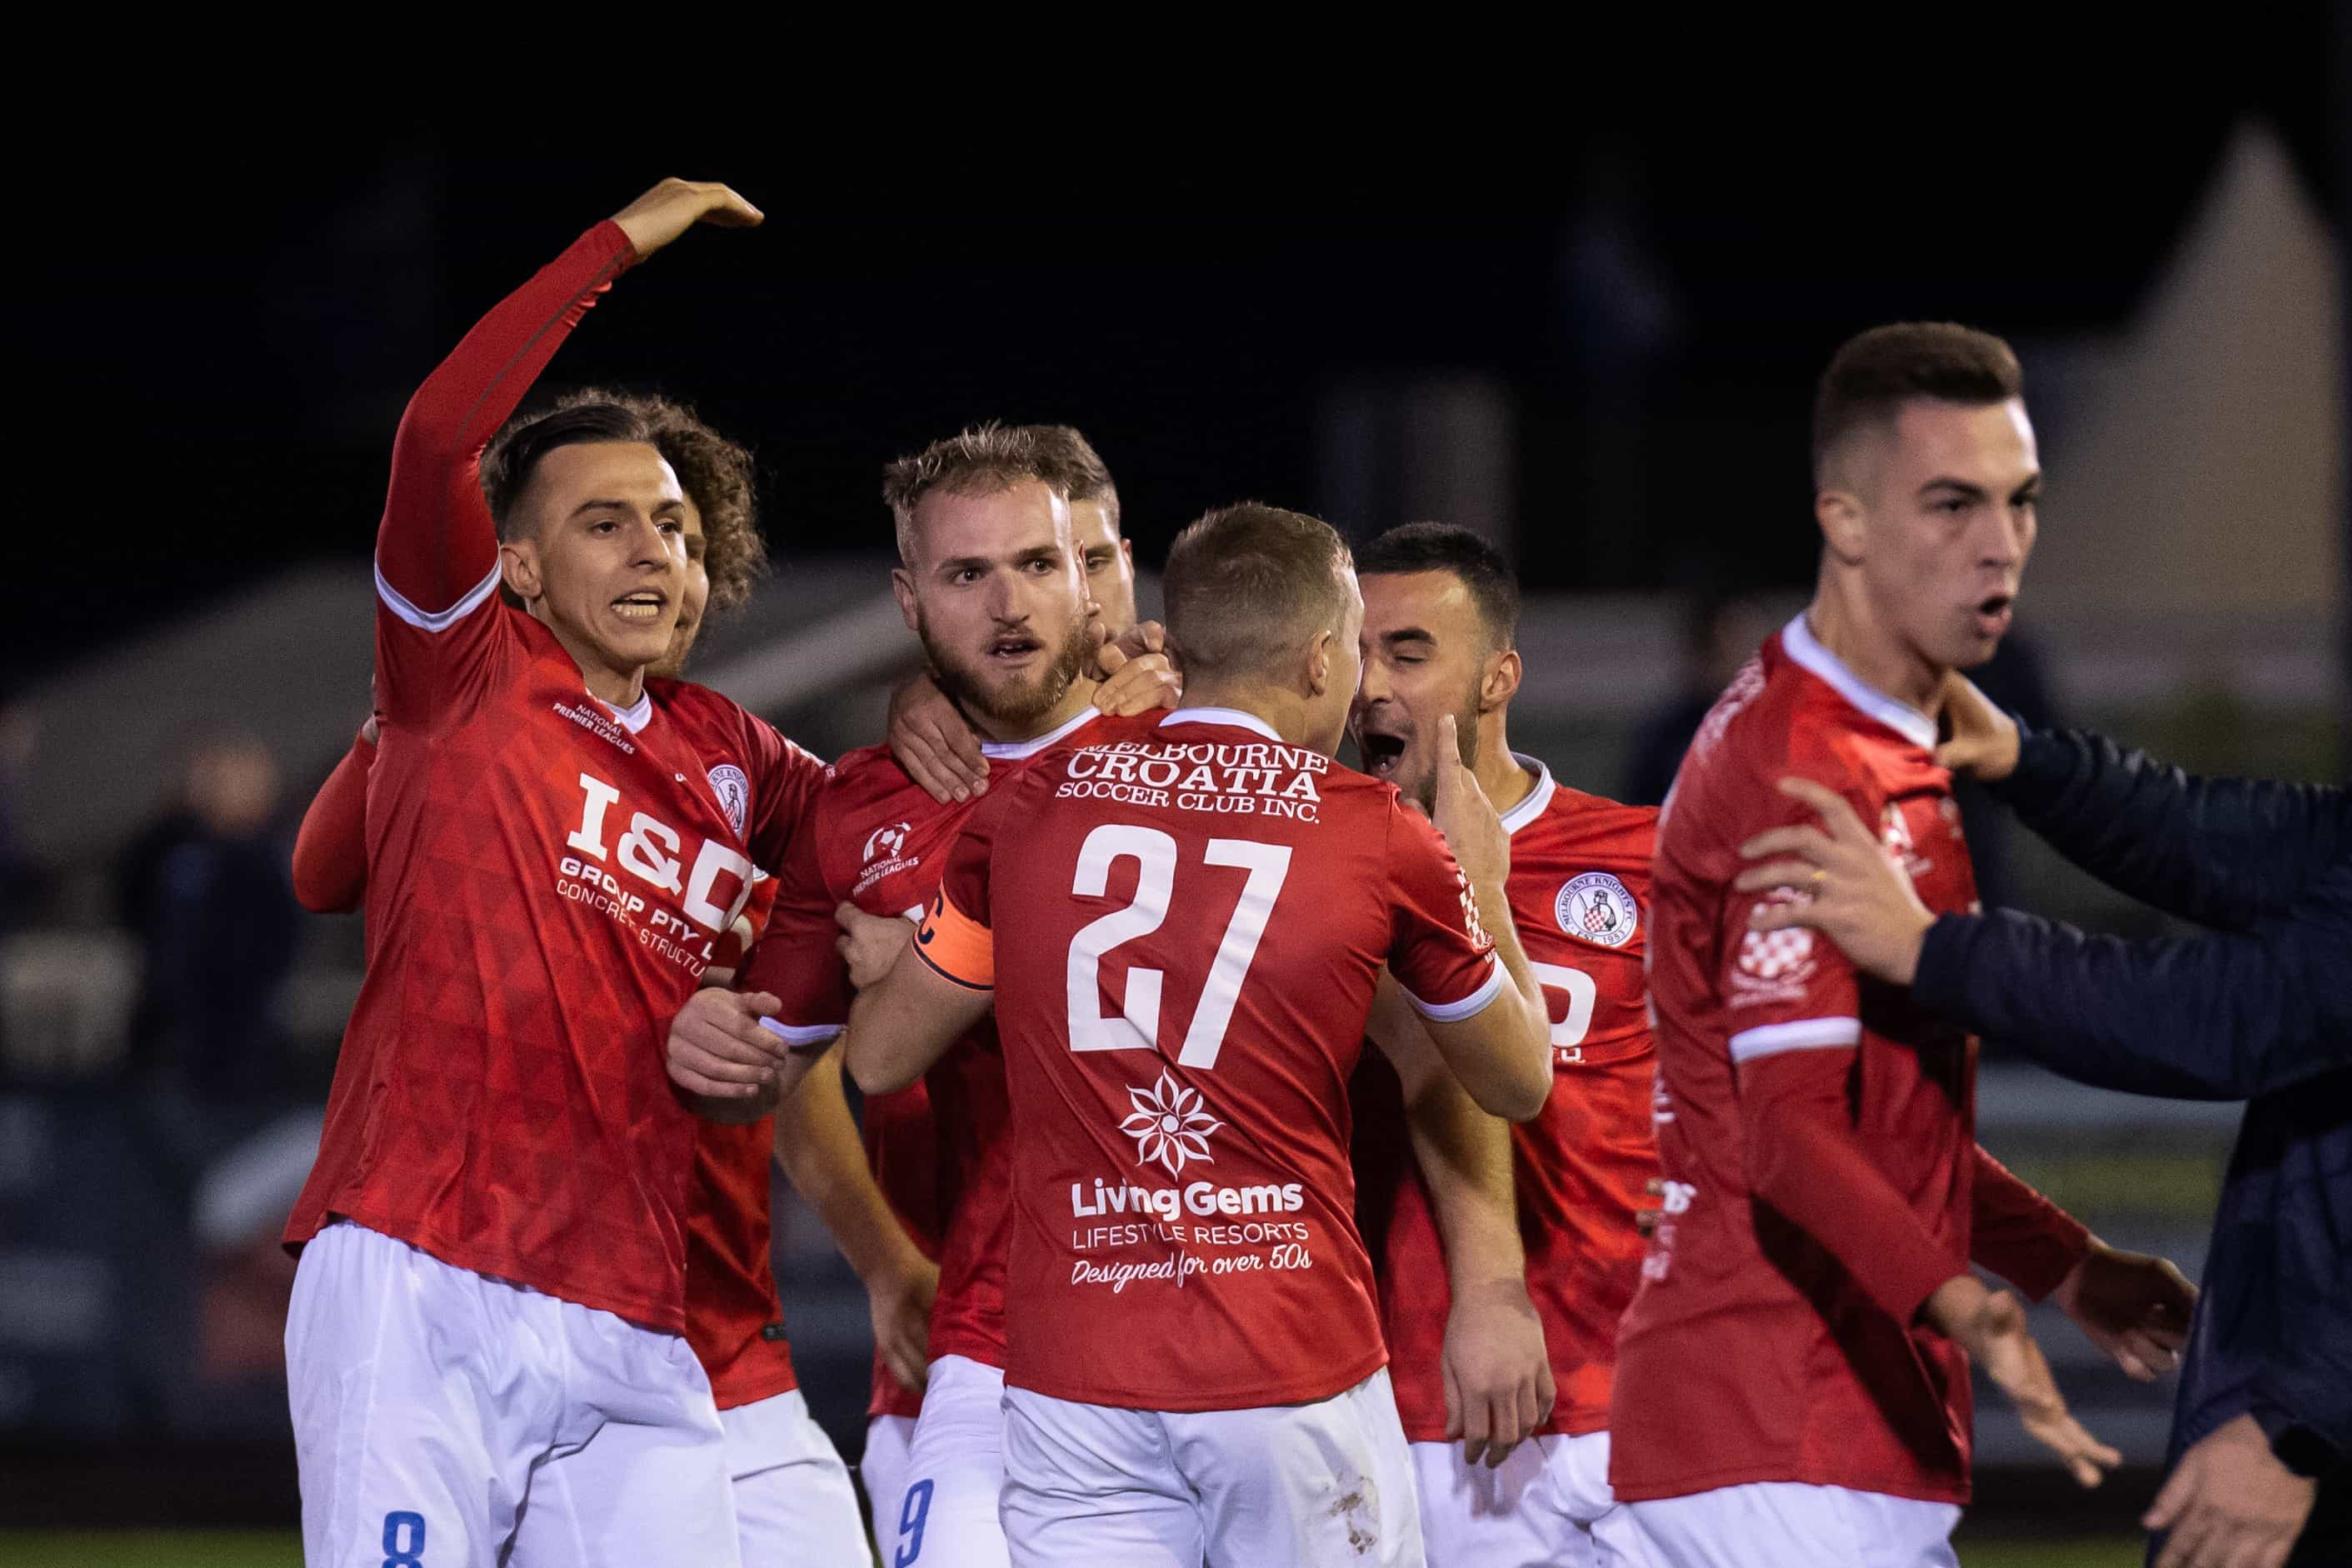 Preview Bola Melbourne Knights vs Avondale 5 Juli 2019